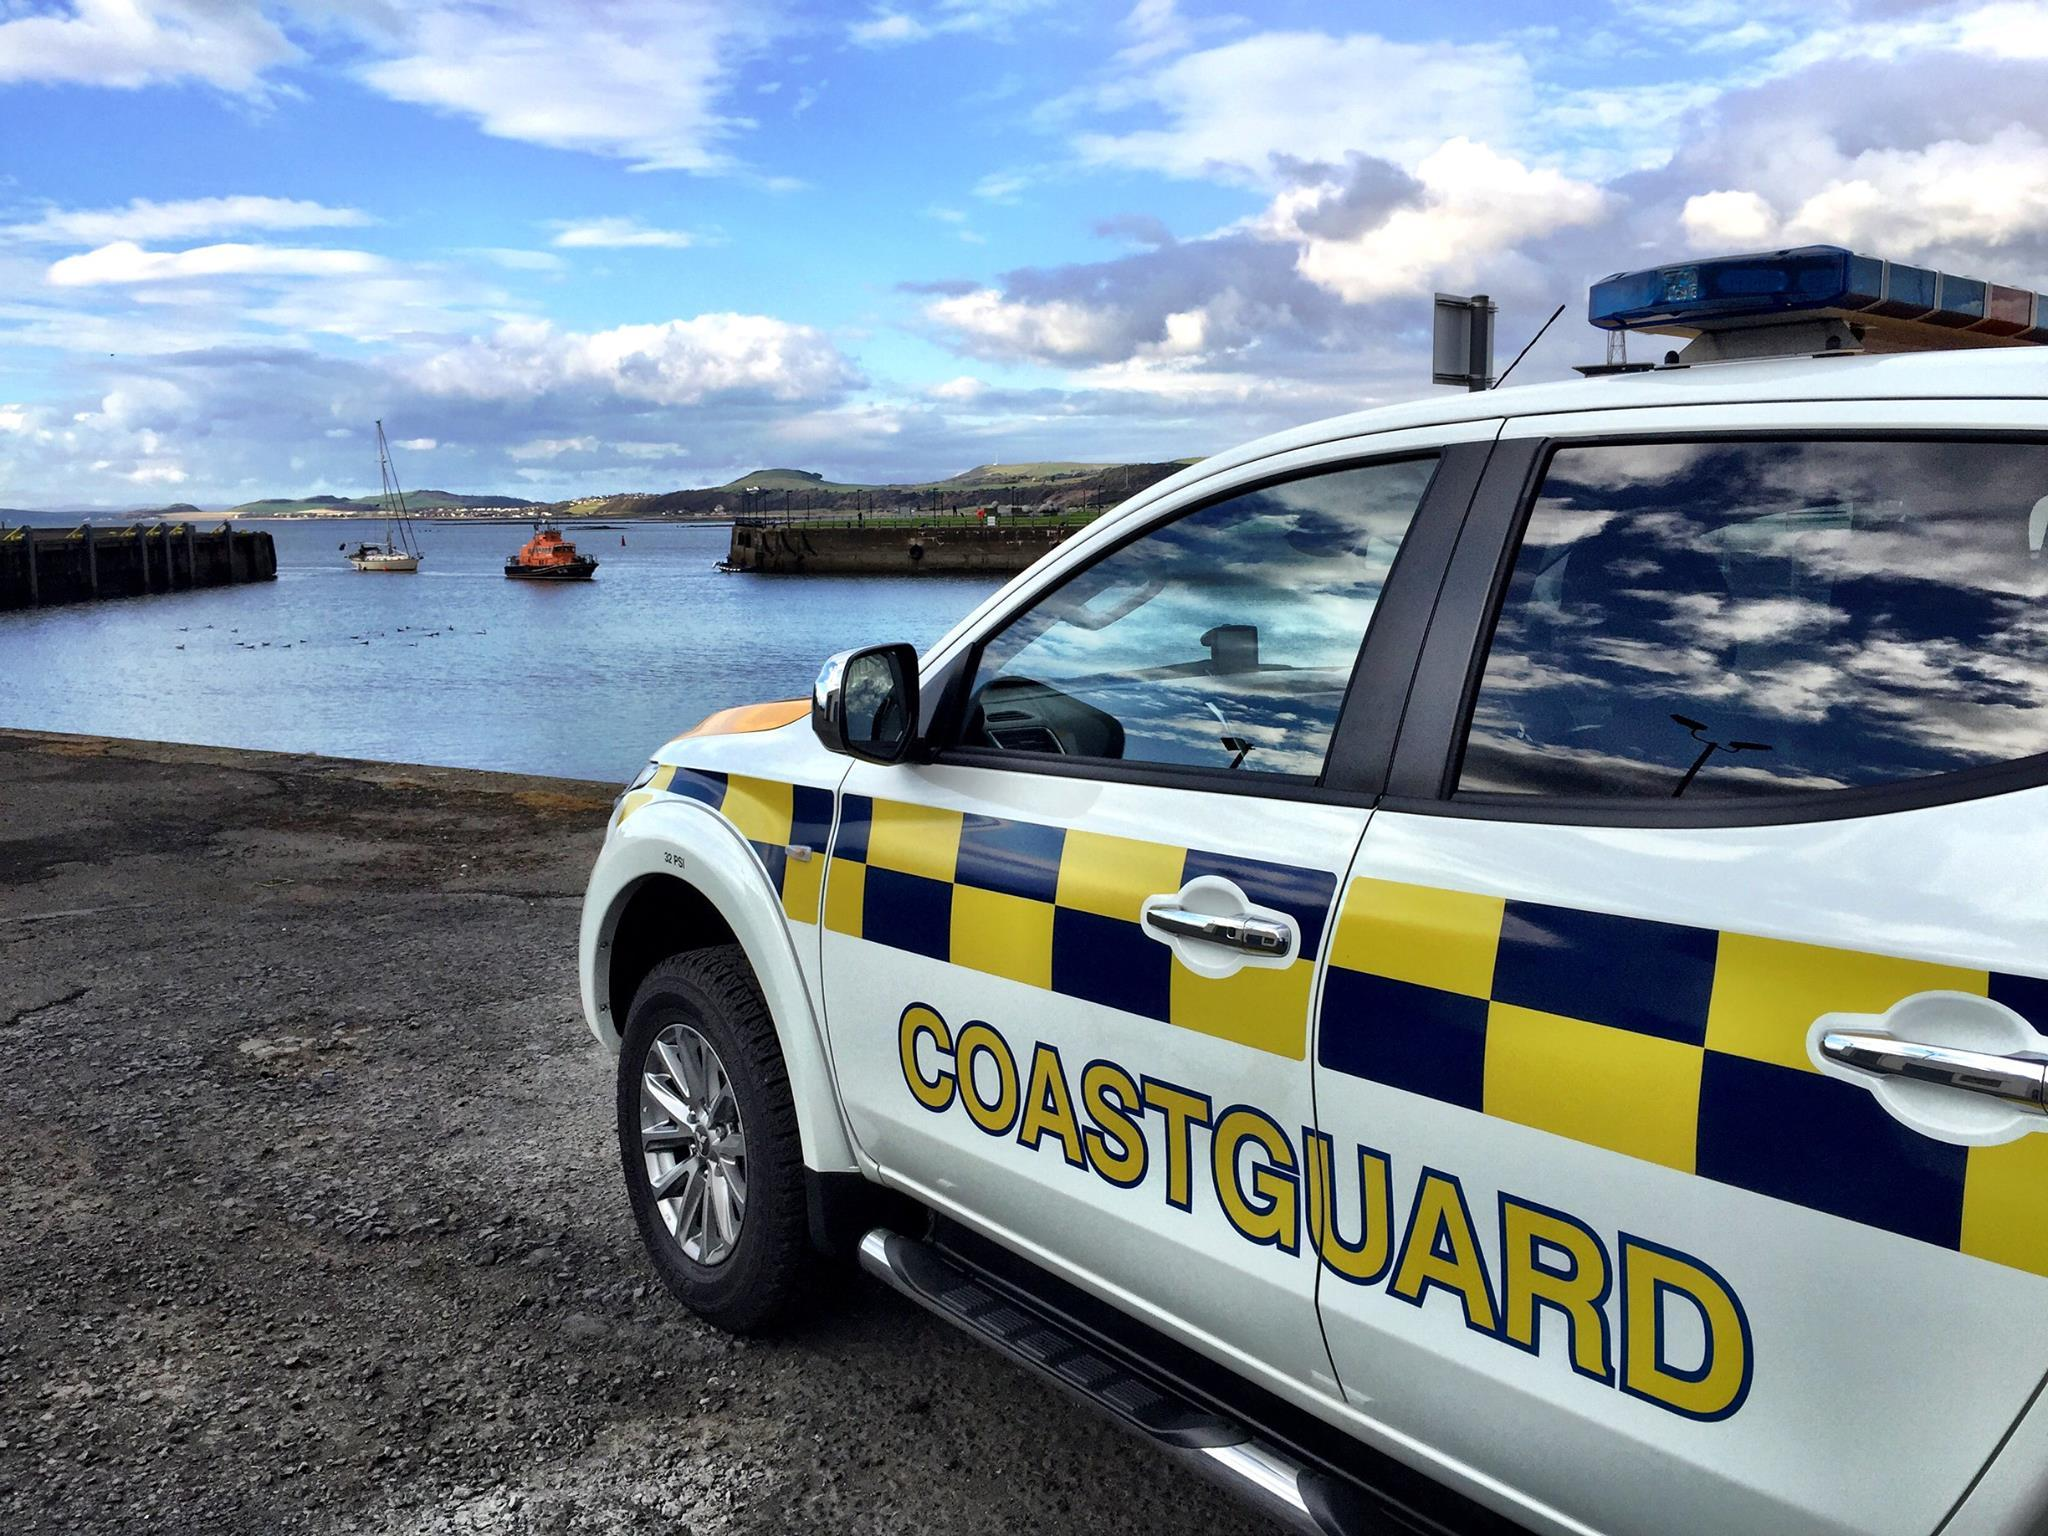 HM Coastguard is recruiting volunteer rescue officers